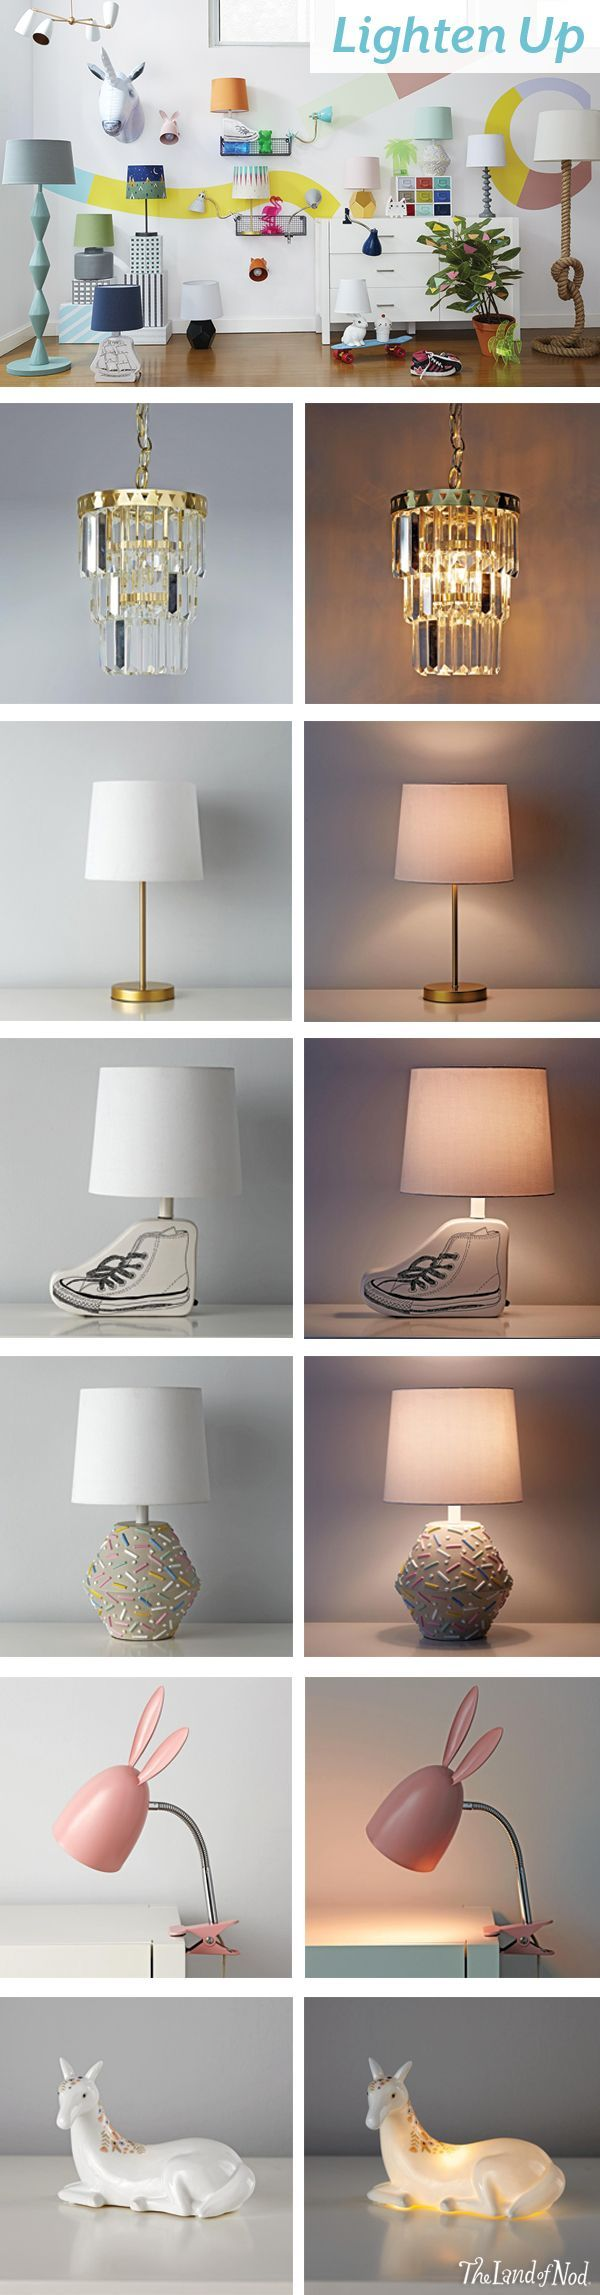 Brighten up your kids bedroom with The Land of Nod's collection of kids lamps. From ceiling lamps and floor lamps to table lamps and nightlights, we have tons of stylish and modern lighting to deck out your home.